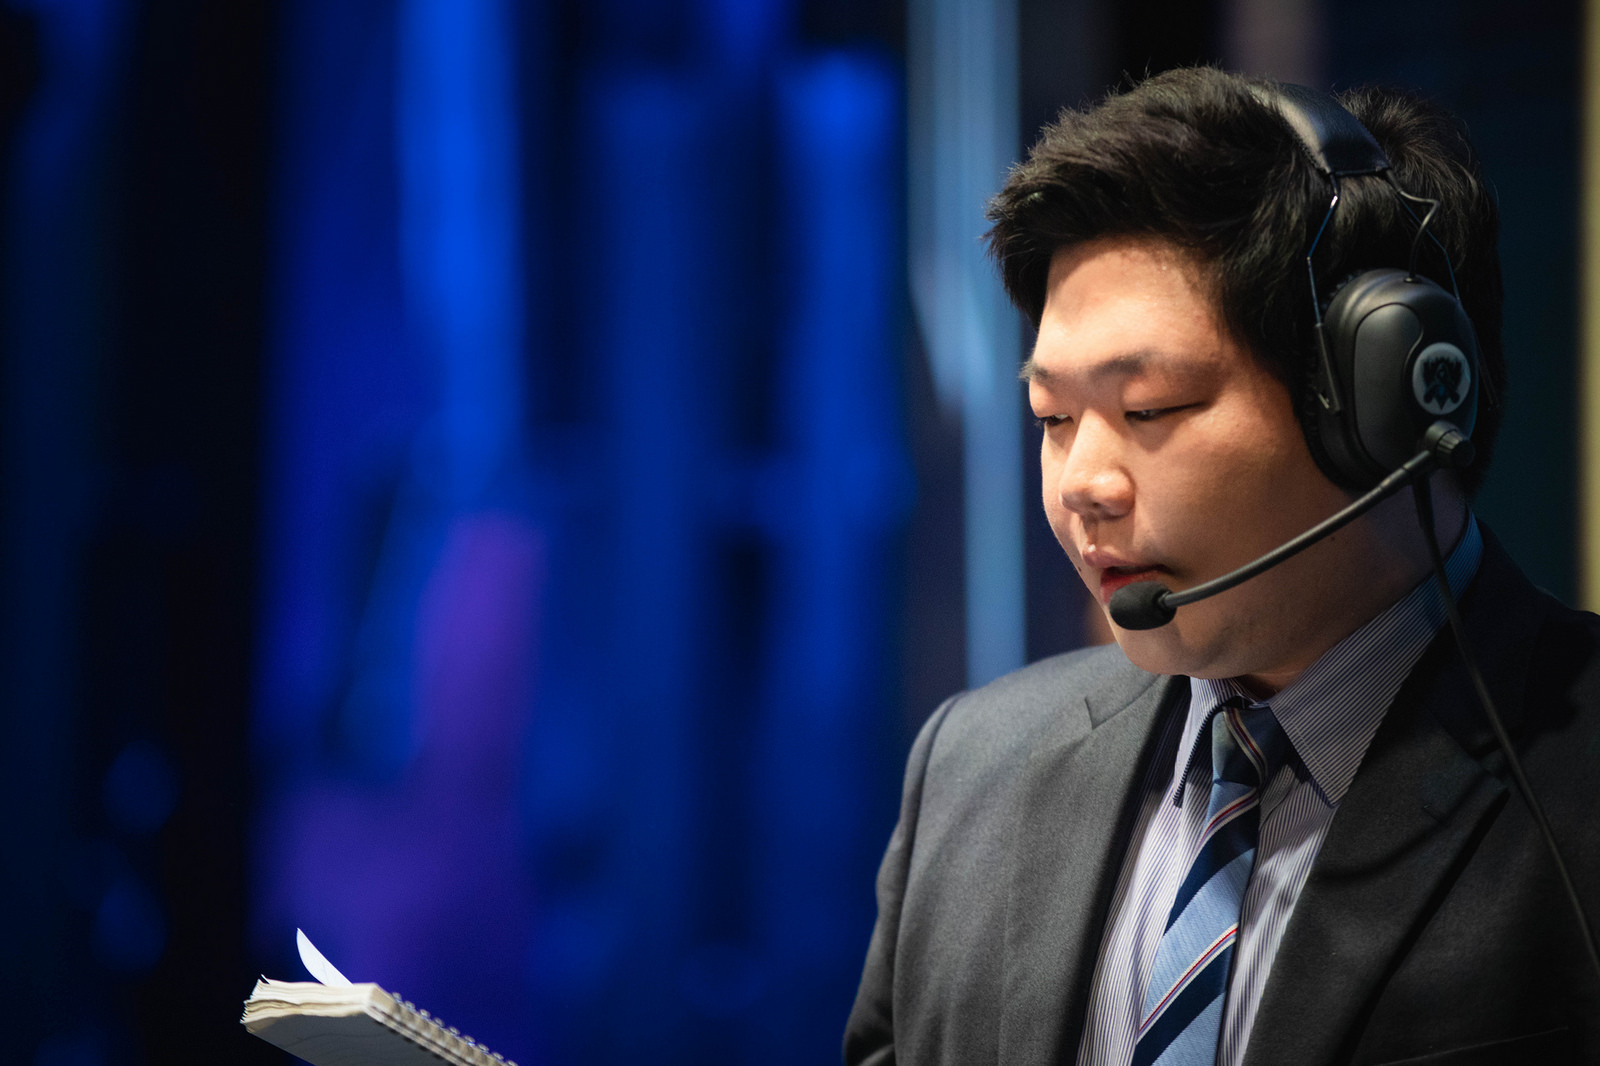 Head coach of T1 Kim has stepped down after a disappointing end to T1's season